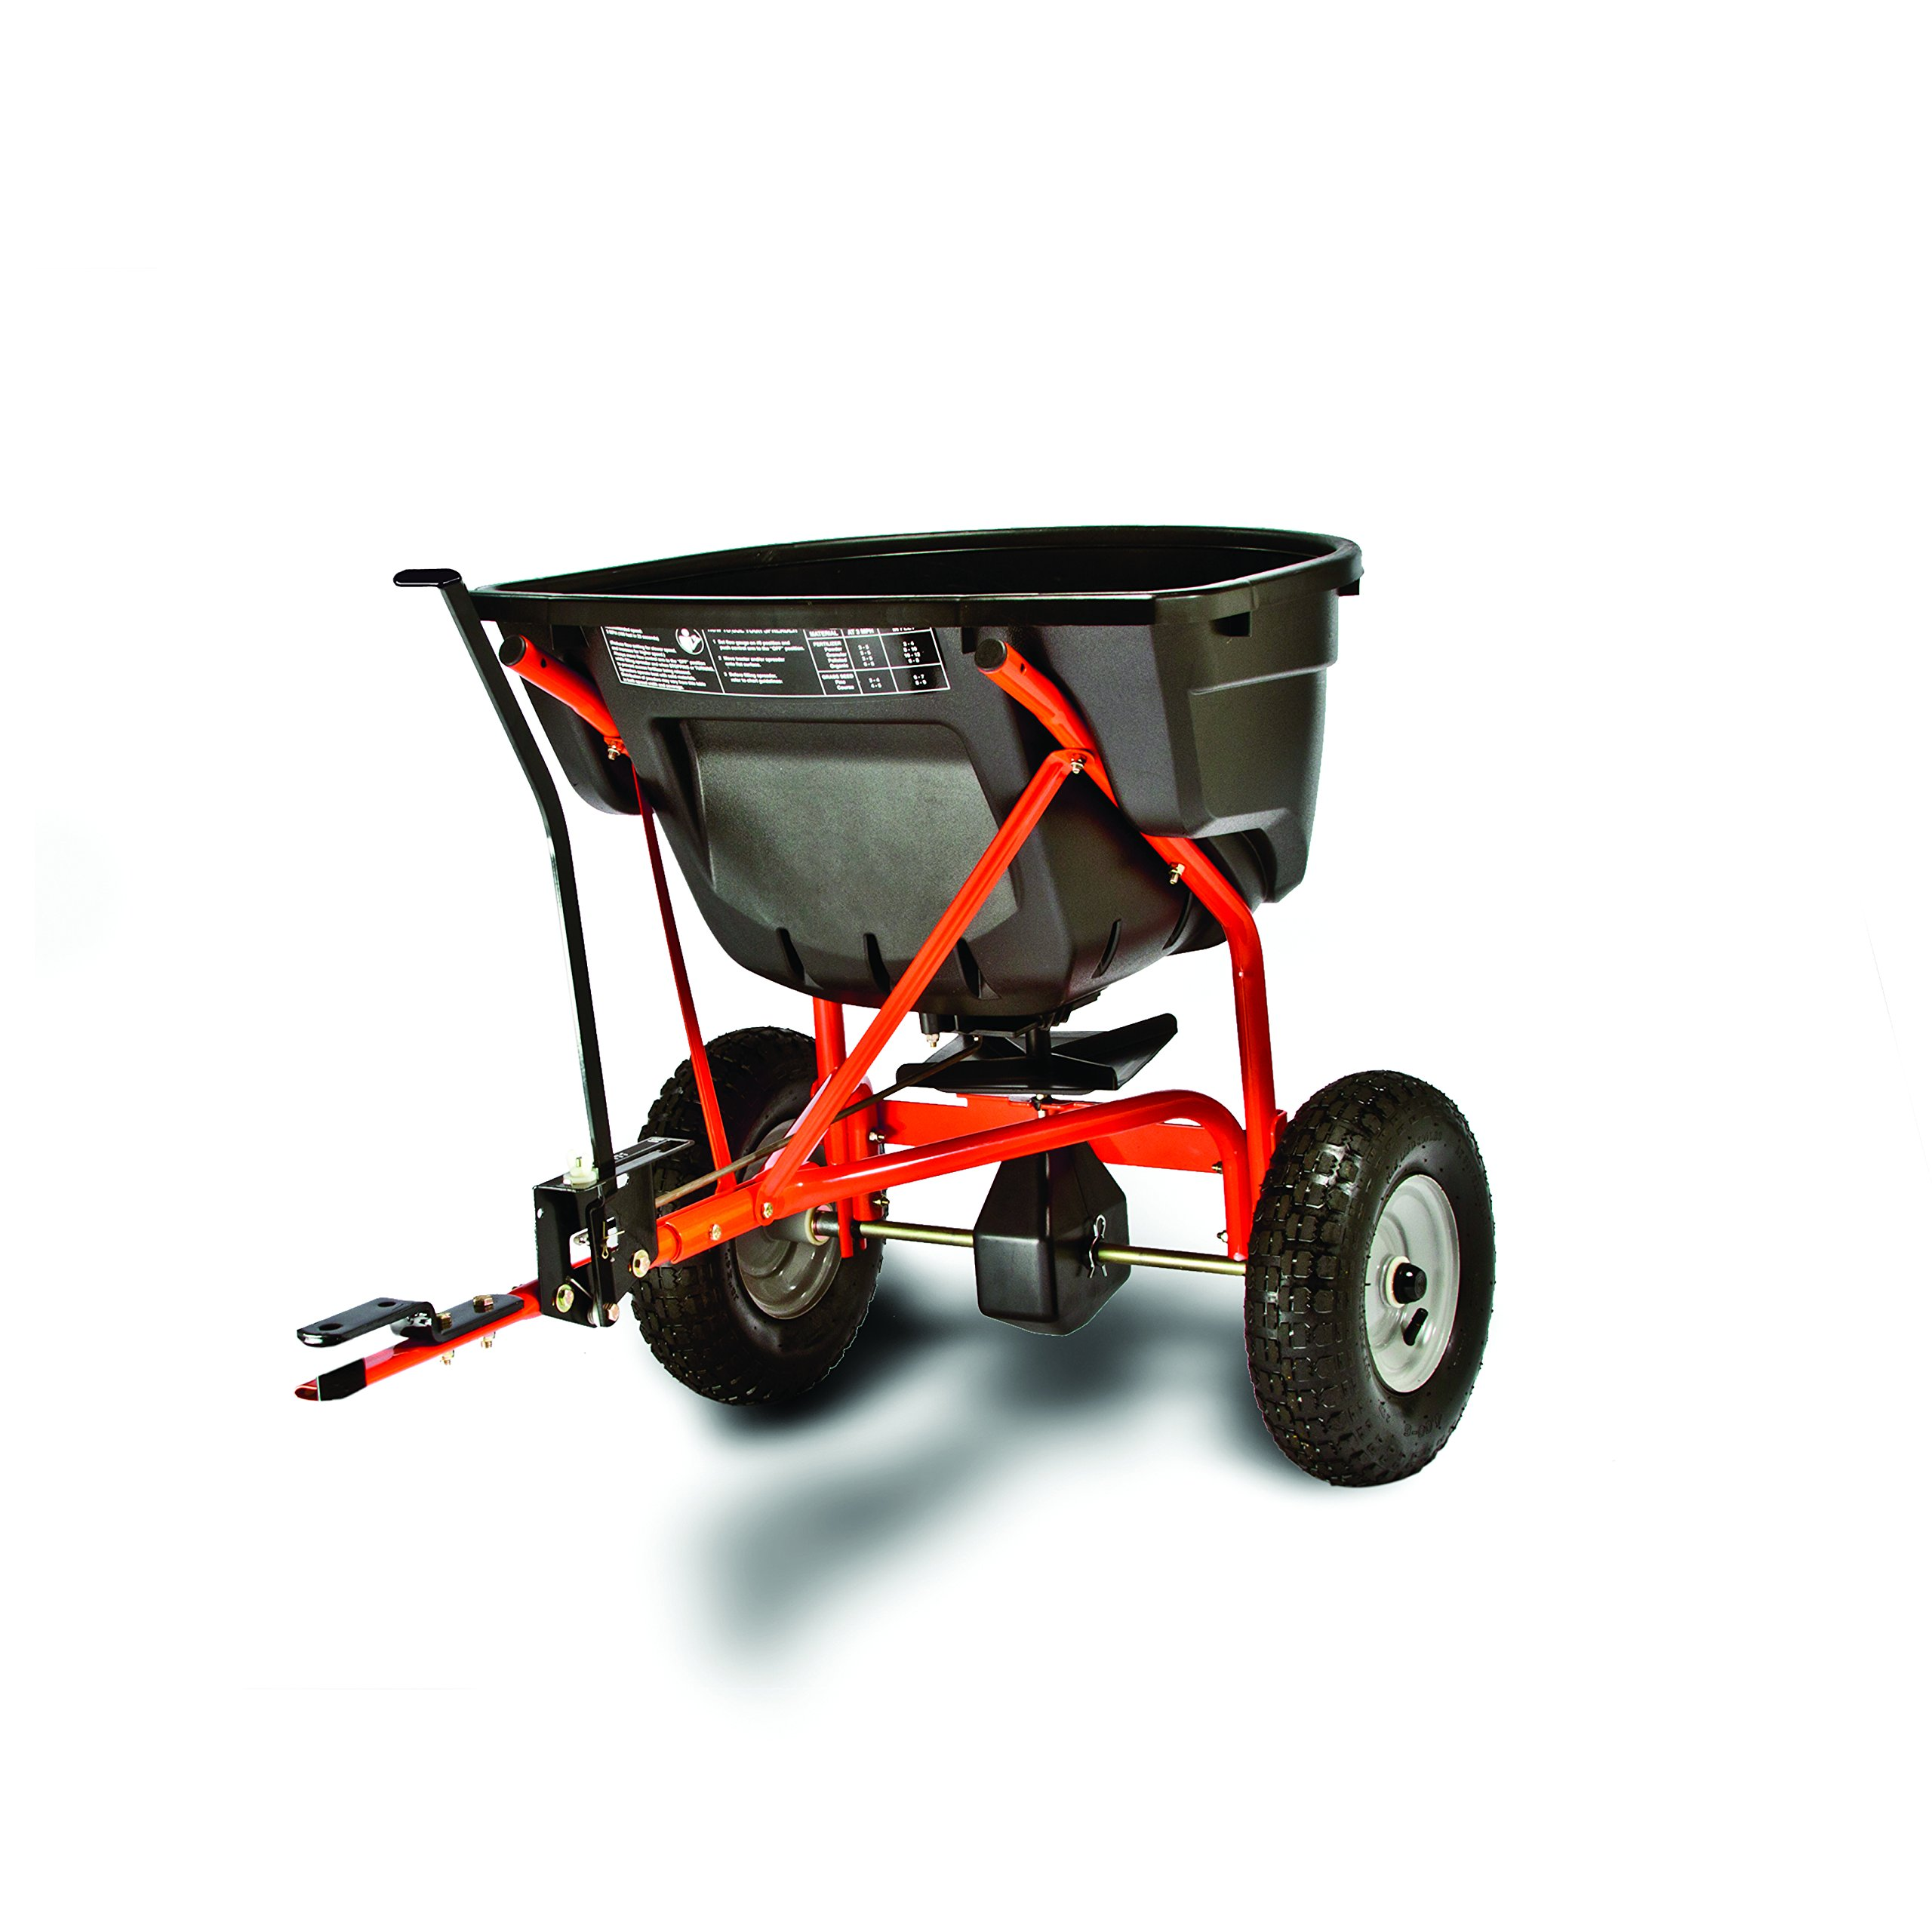 Agri-Fab 45-0463 130-Pound Tow Behind Broadcast Spreader by Agri-Fab